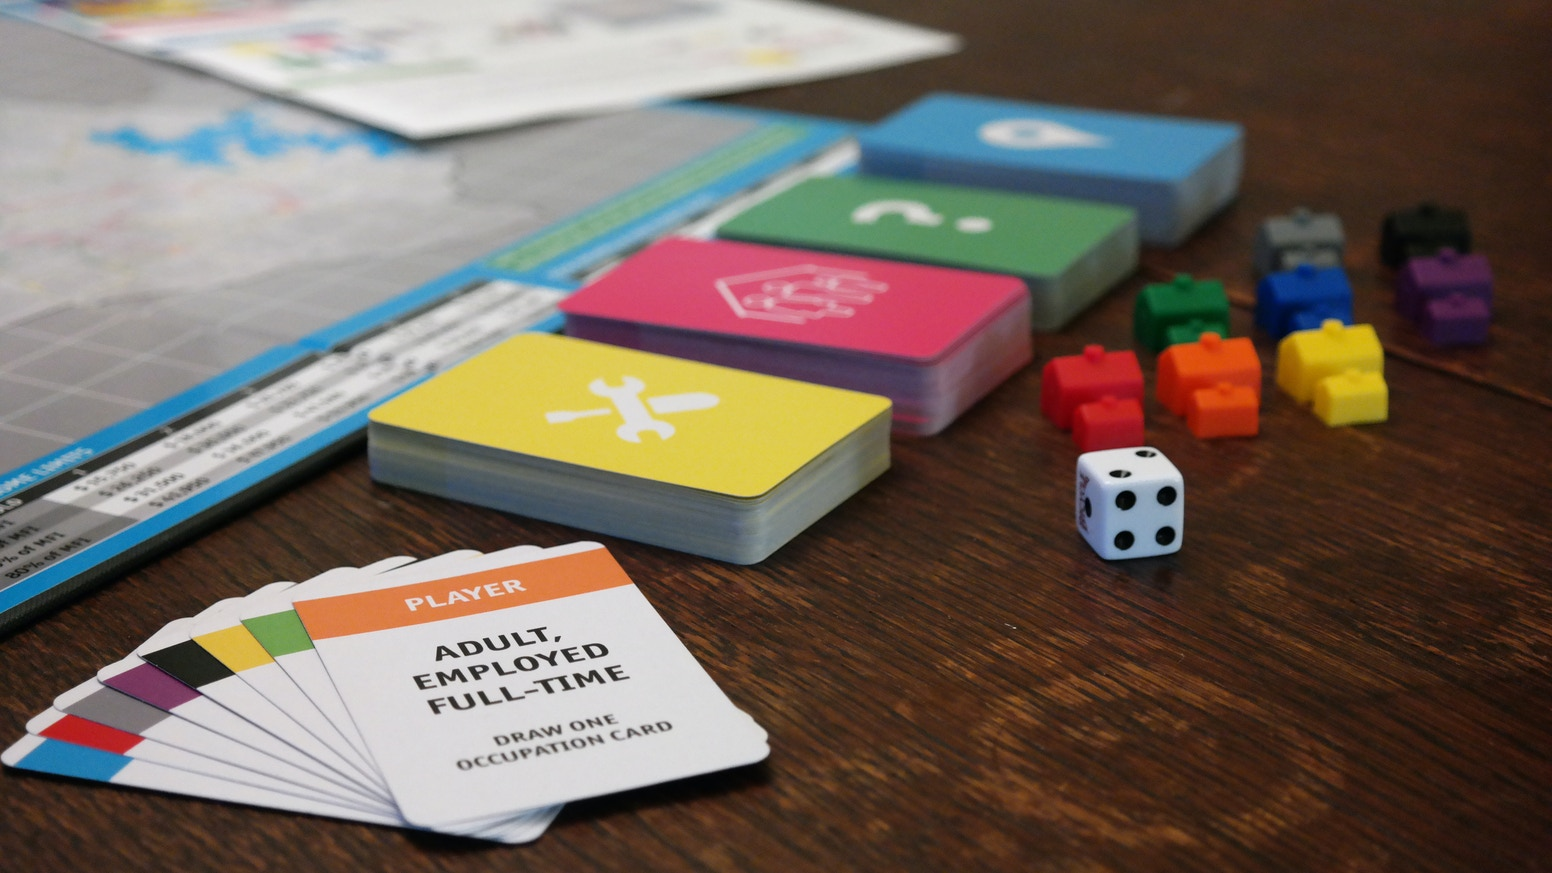 A gamified teaching tool for communities facing affordable housing challenges.